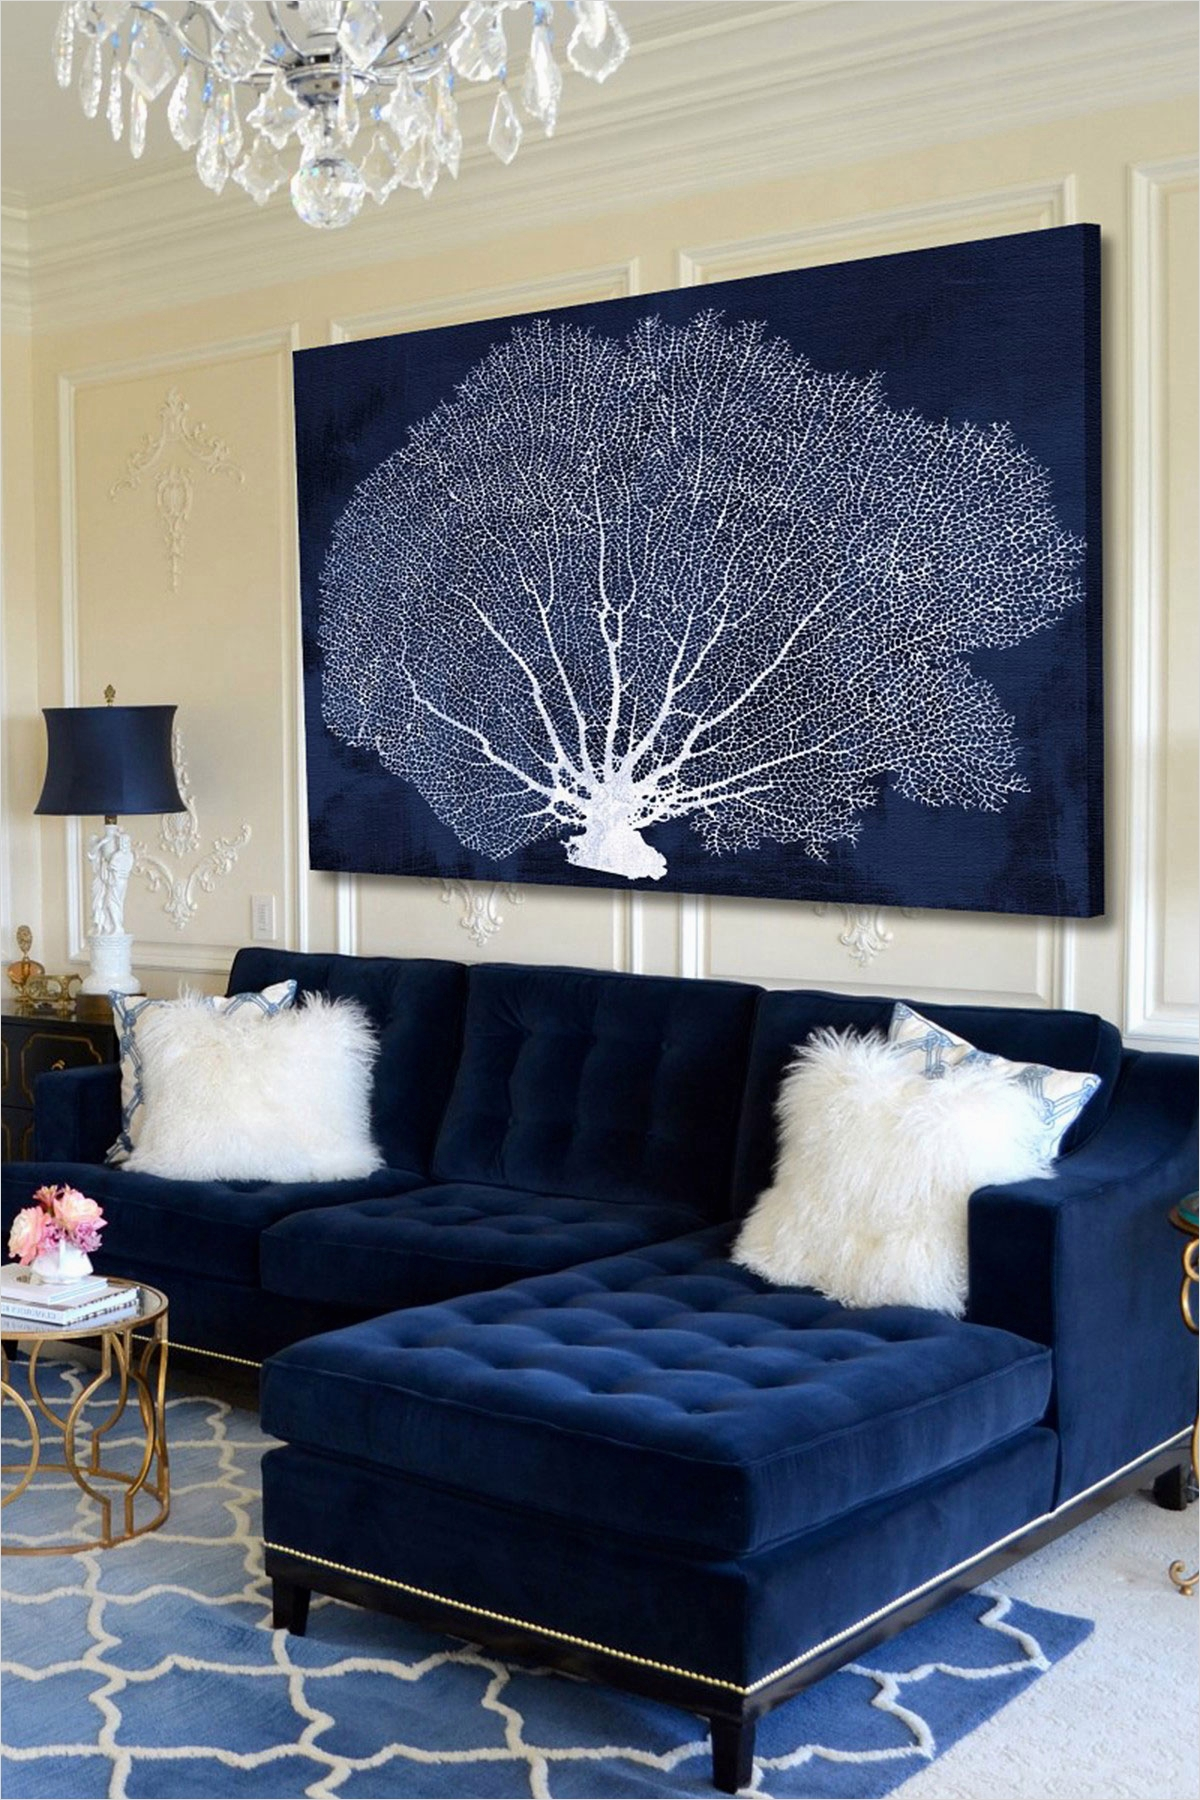 41 Amazing Navy Blue and White Living Room 88 Navy Blue Living Room Ideas – Adorable Home 4